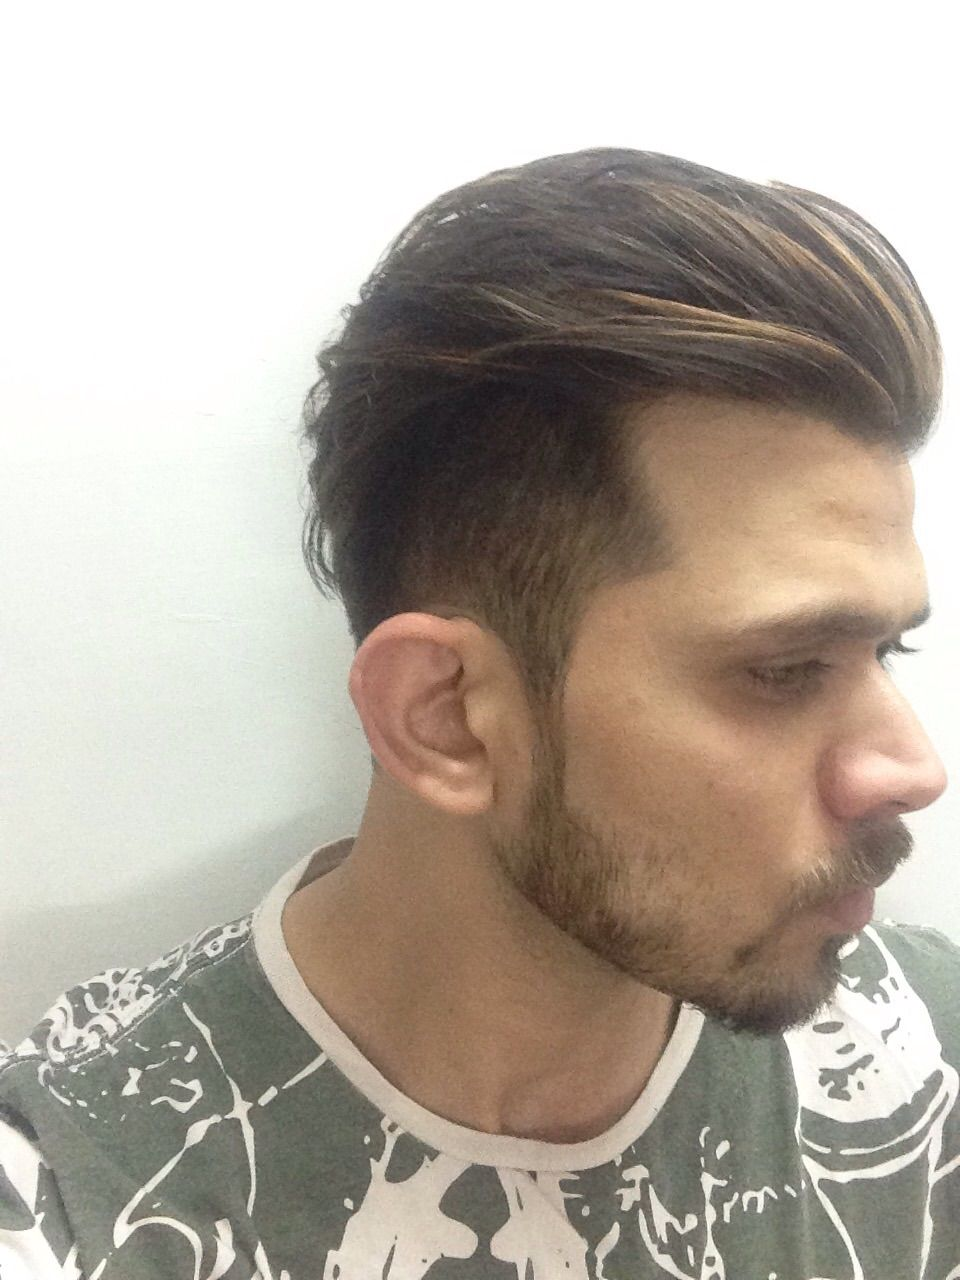 Undercut 2015 Keeping The Sides And Front Short And Middle Part Longer To Make It Fall Perfectly Behind